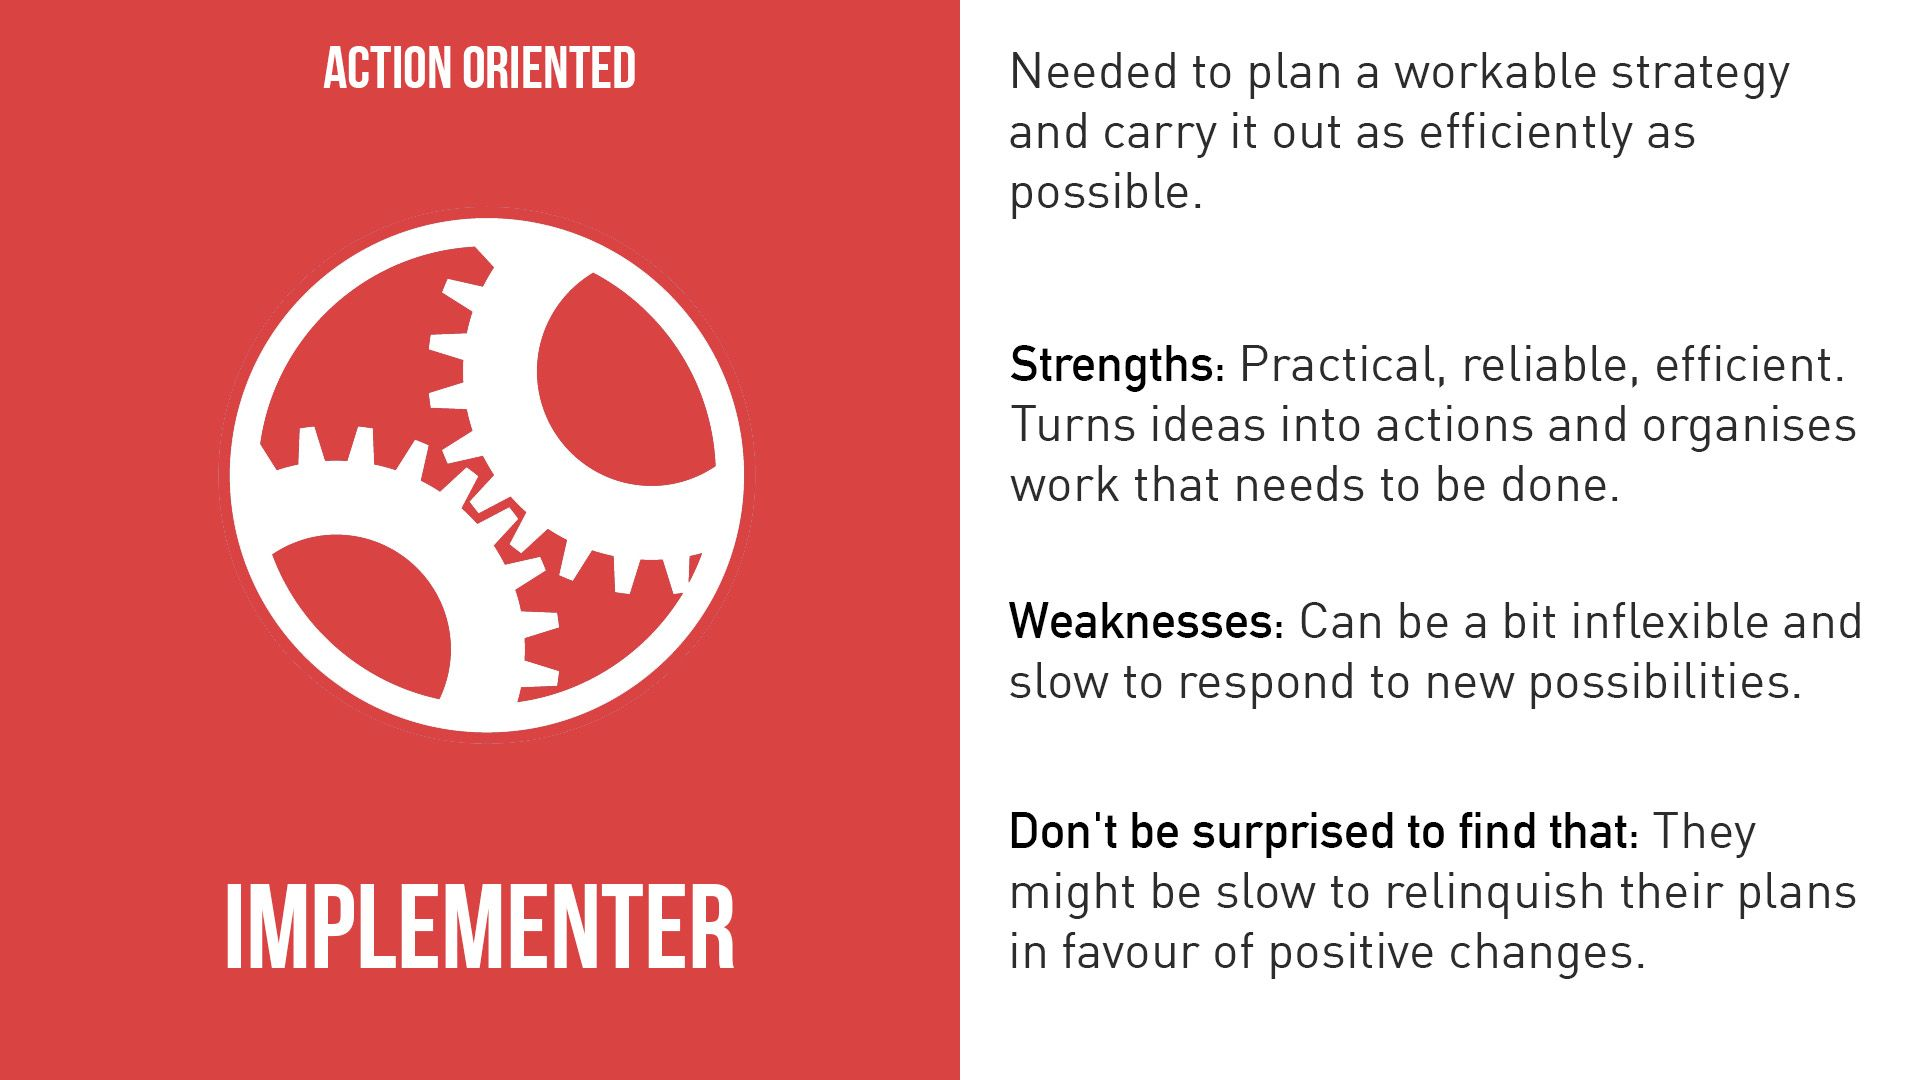 Implementers are the people who get things done. They turn the team's ideas and concepts into practical actions and plans. They are typically conservative, disciplined people who work systematically and efficiently and are very well organized. These are the people who you can count on to get the job done. On the downside, Implementers may be inflexible and can be somewhat resistant to change.